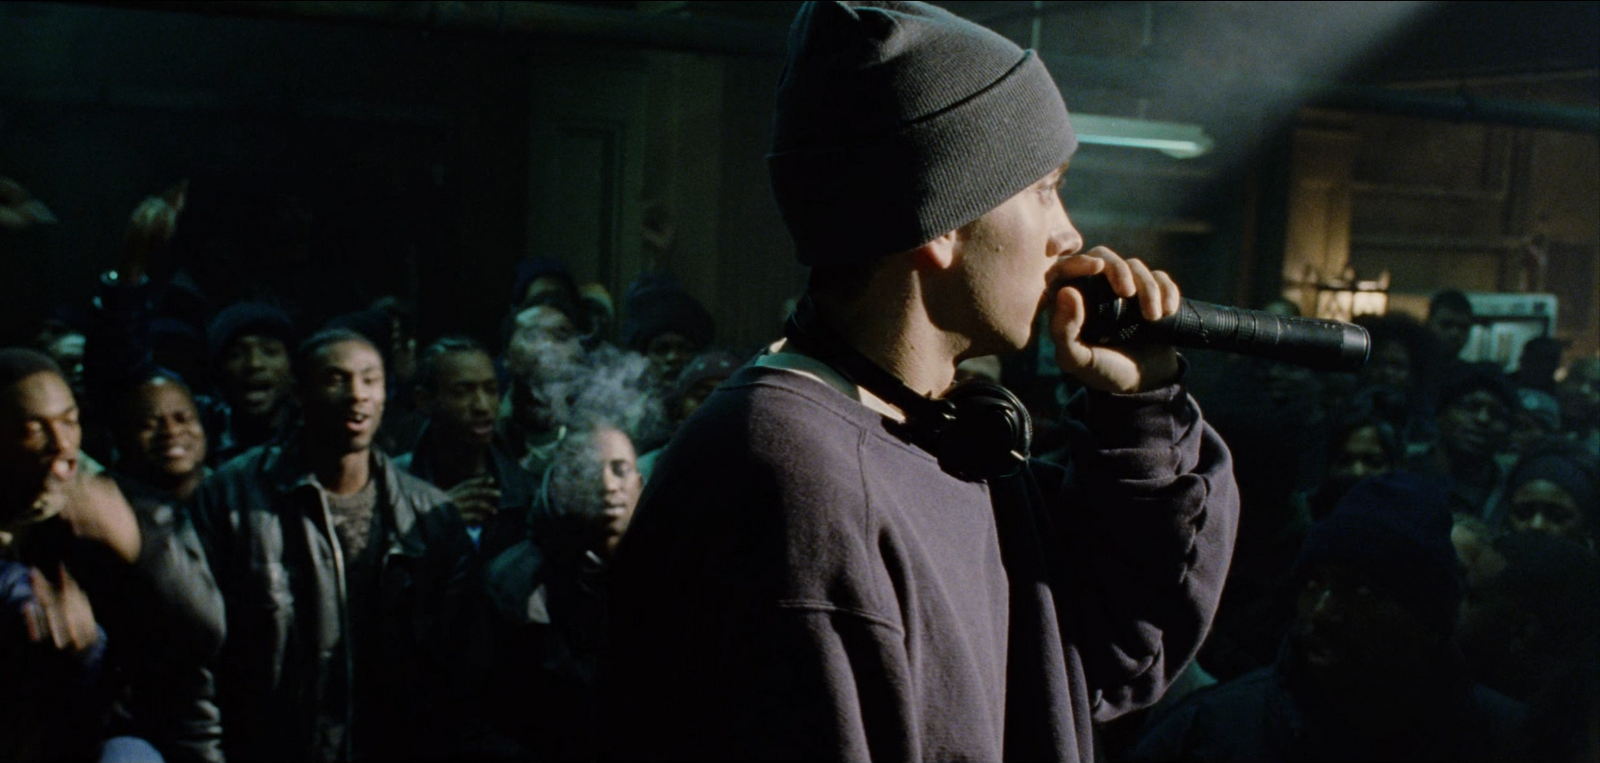 8 mile watch online with subtitles